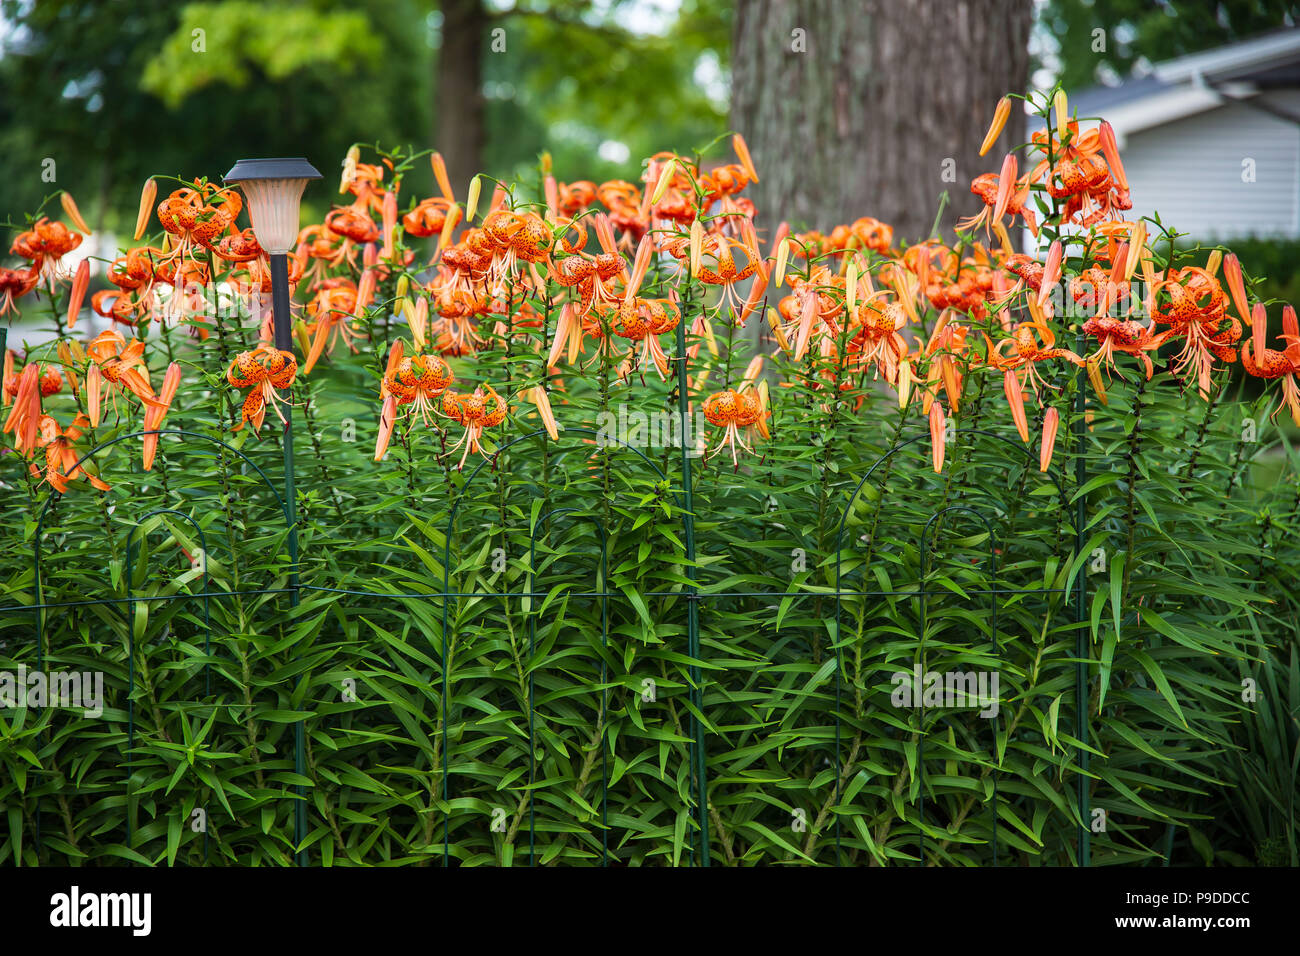 A Close Up Of The Tiger Lily Garden Stock Photo 212352236 Alamy